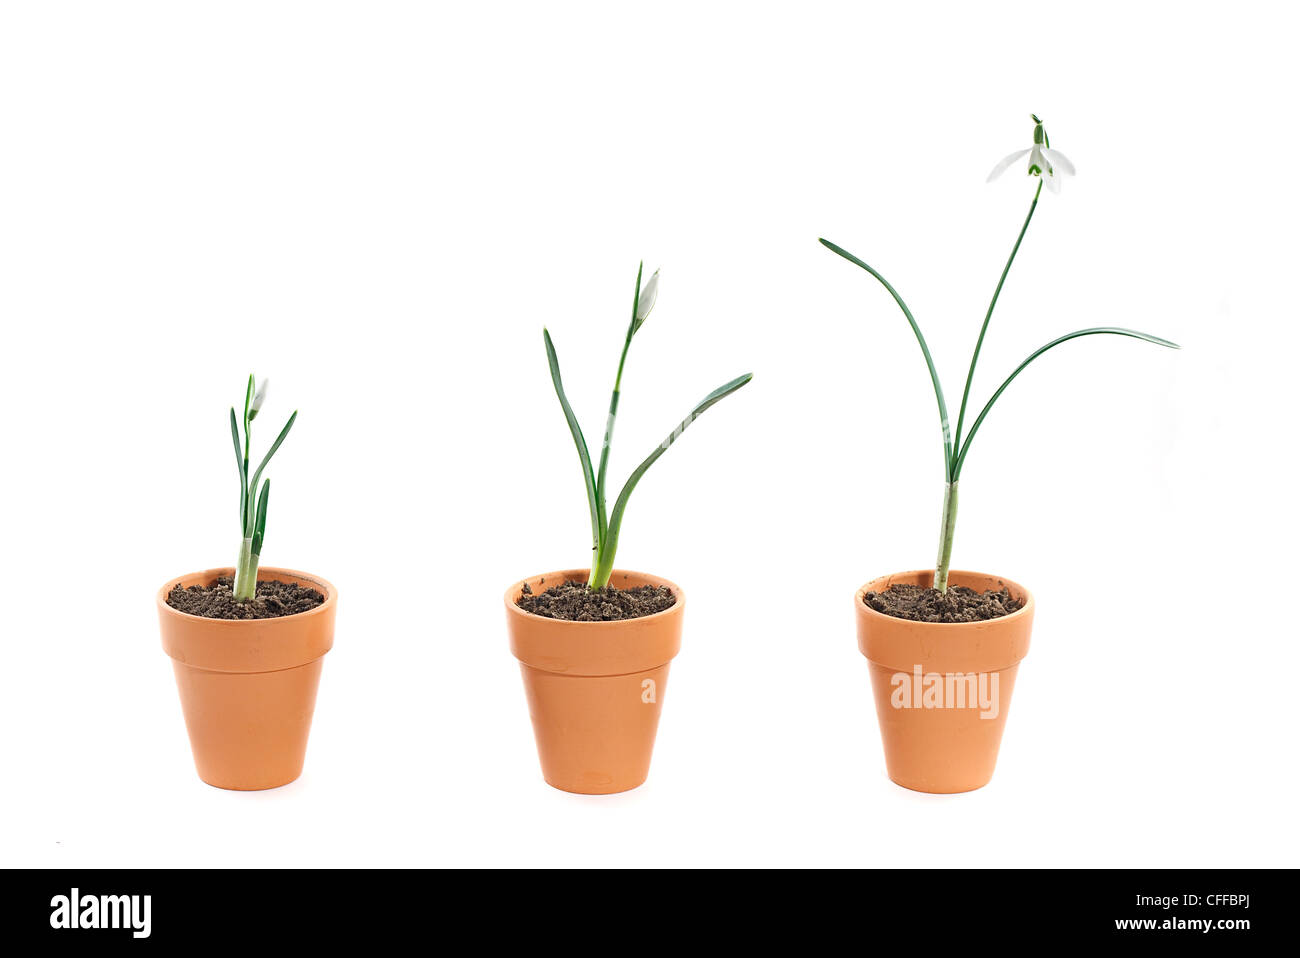 three snowdrops of various stages of growth in terracotta plant pots on a white background - Stock Image